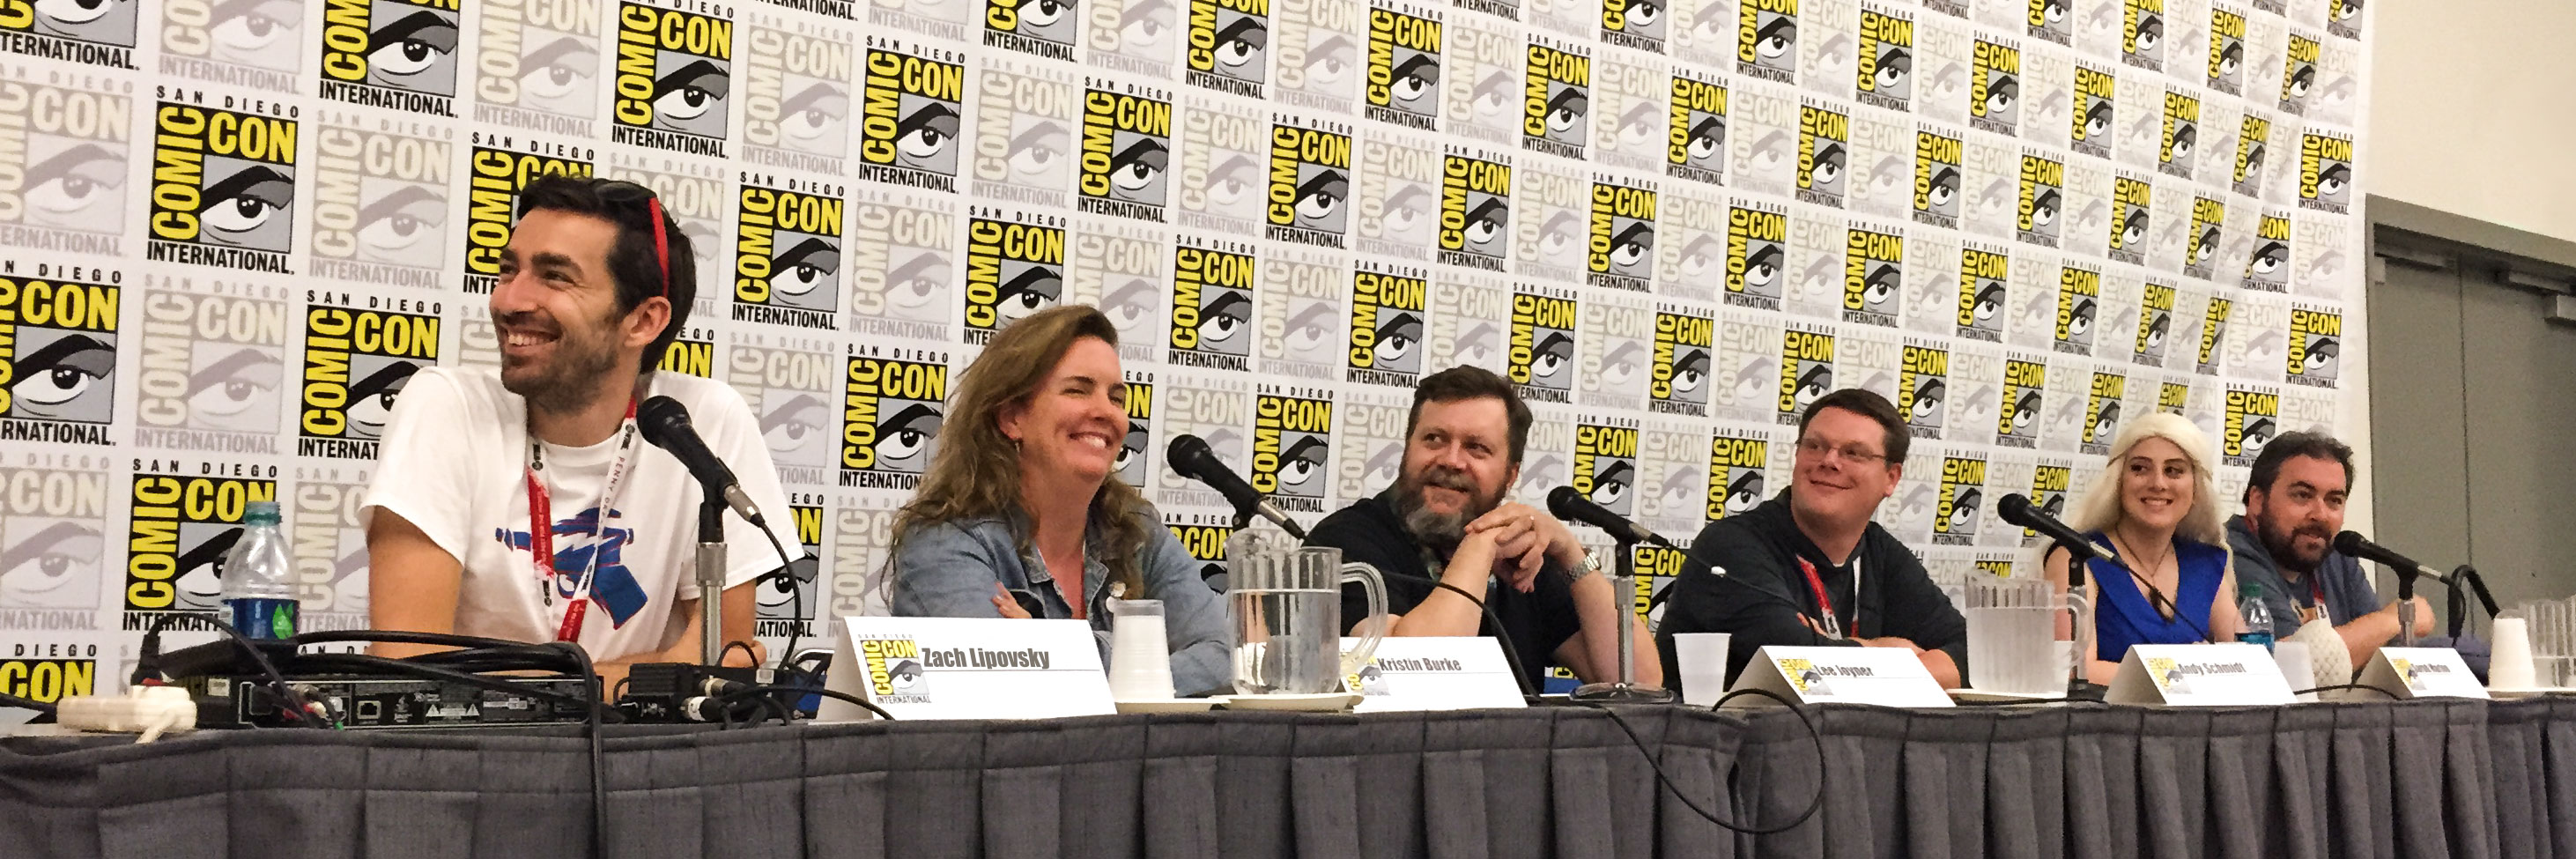 San Diego Comic Con Panel: How to be a Nerd for a Living